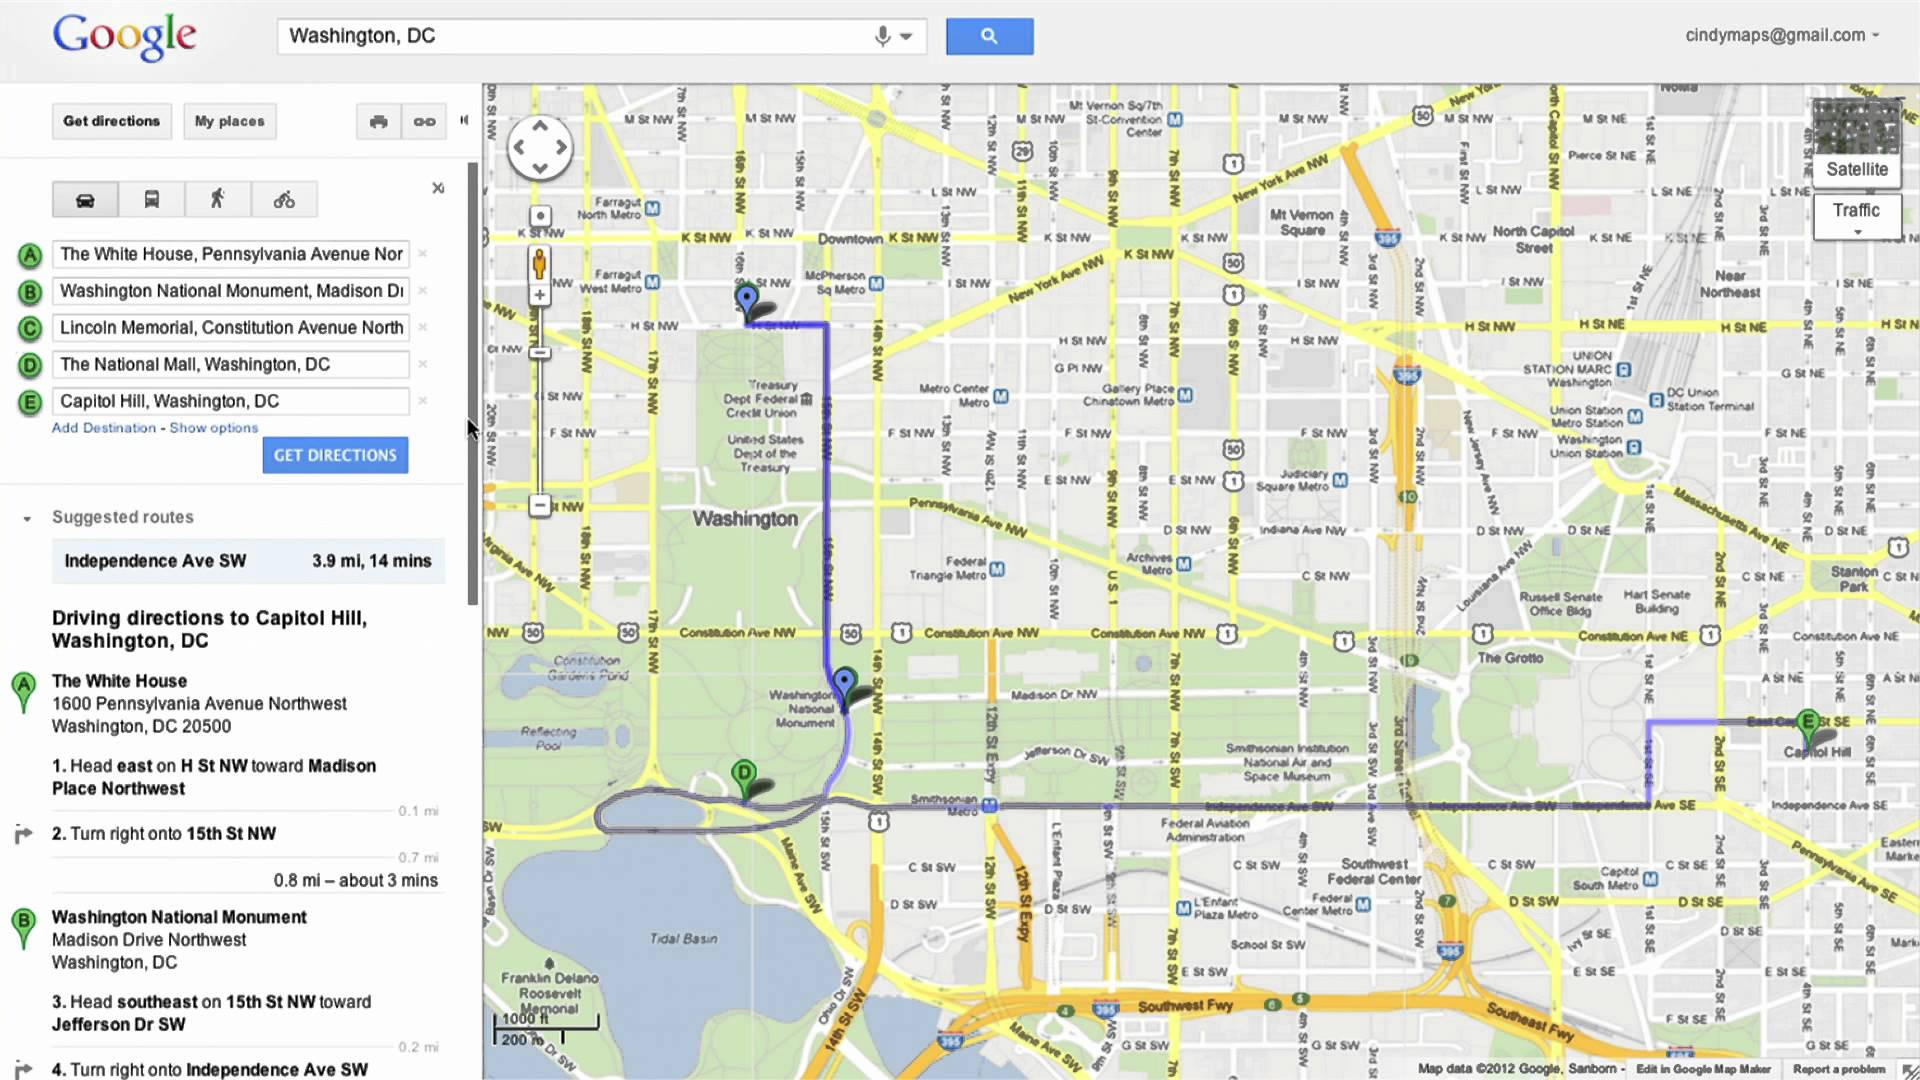 Saving directions in Google Maps